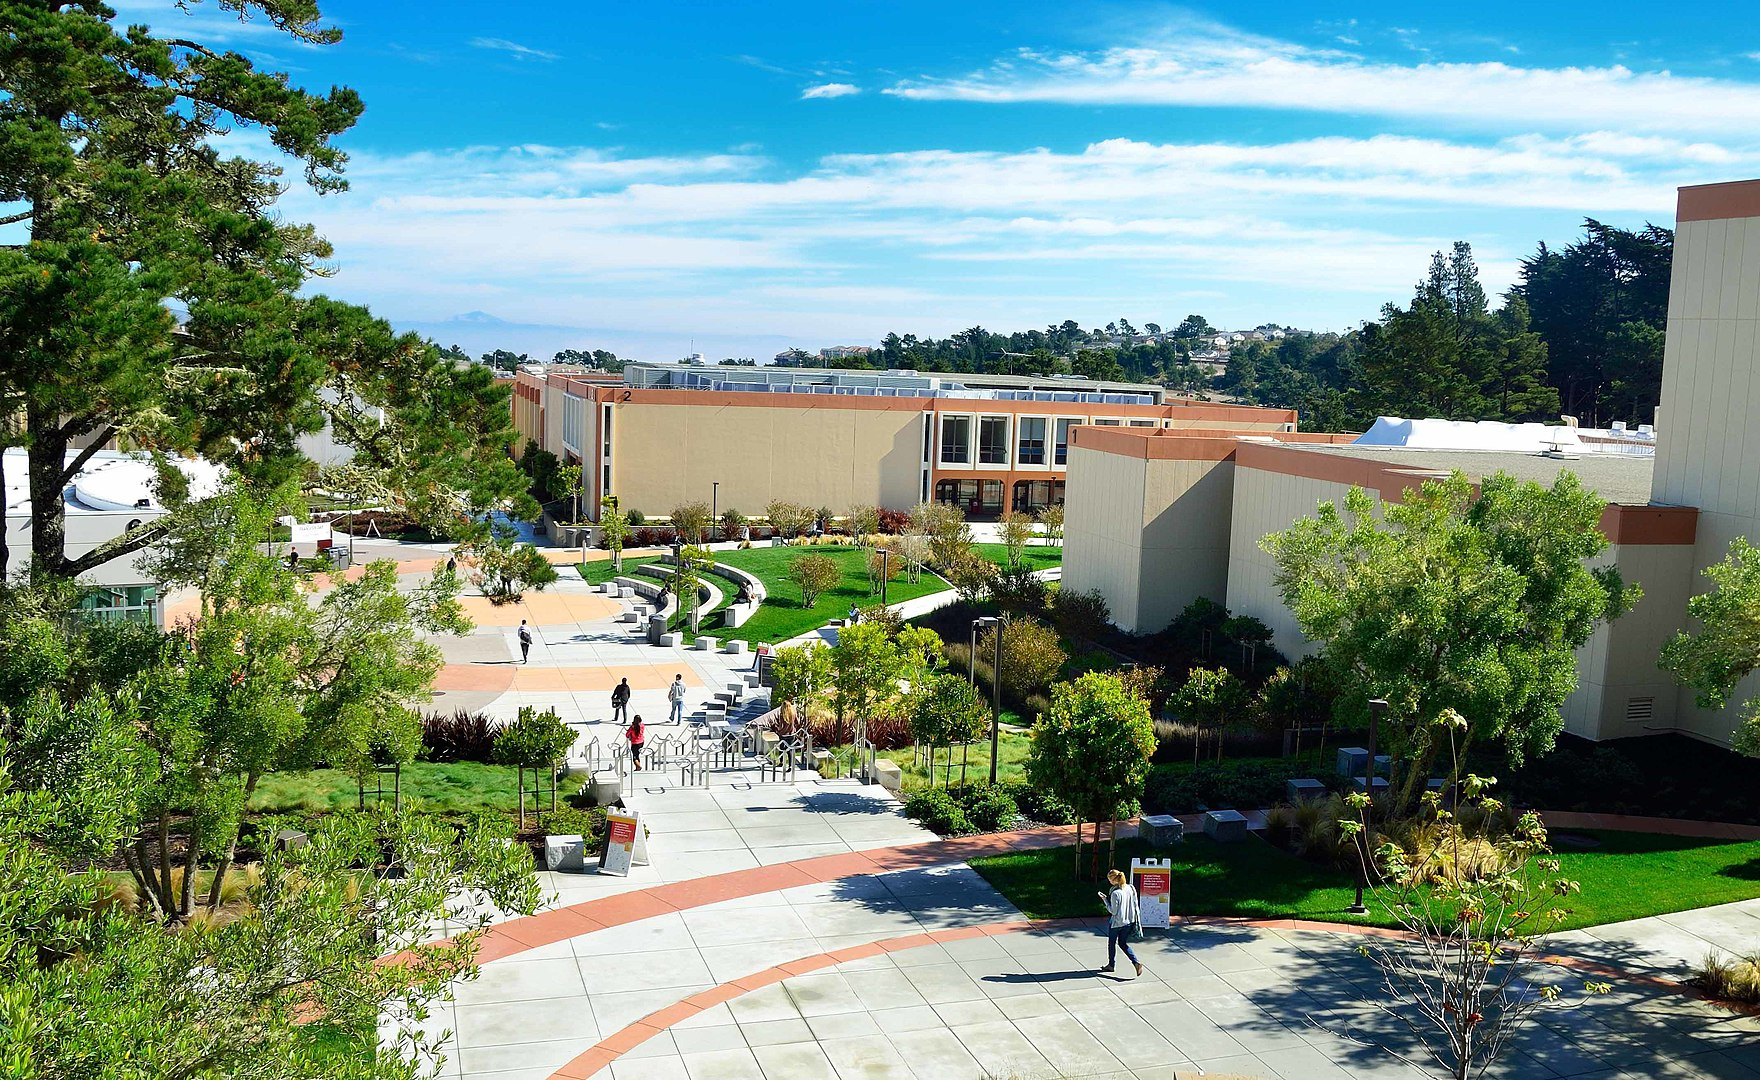 Most_Affordable_Colleges_Universities_Skyline_College